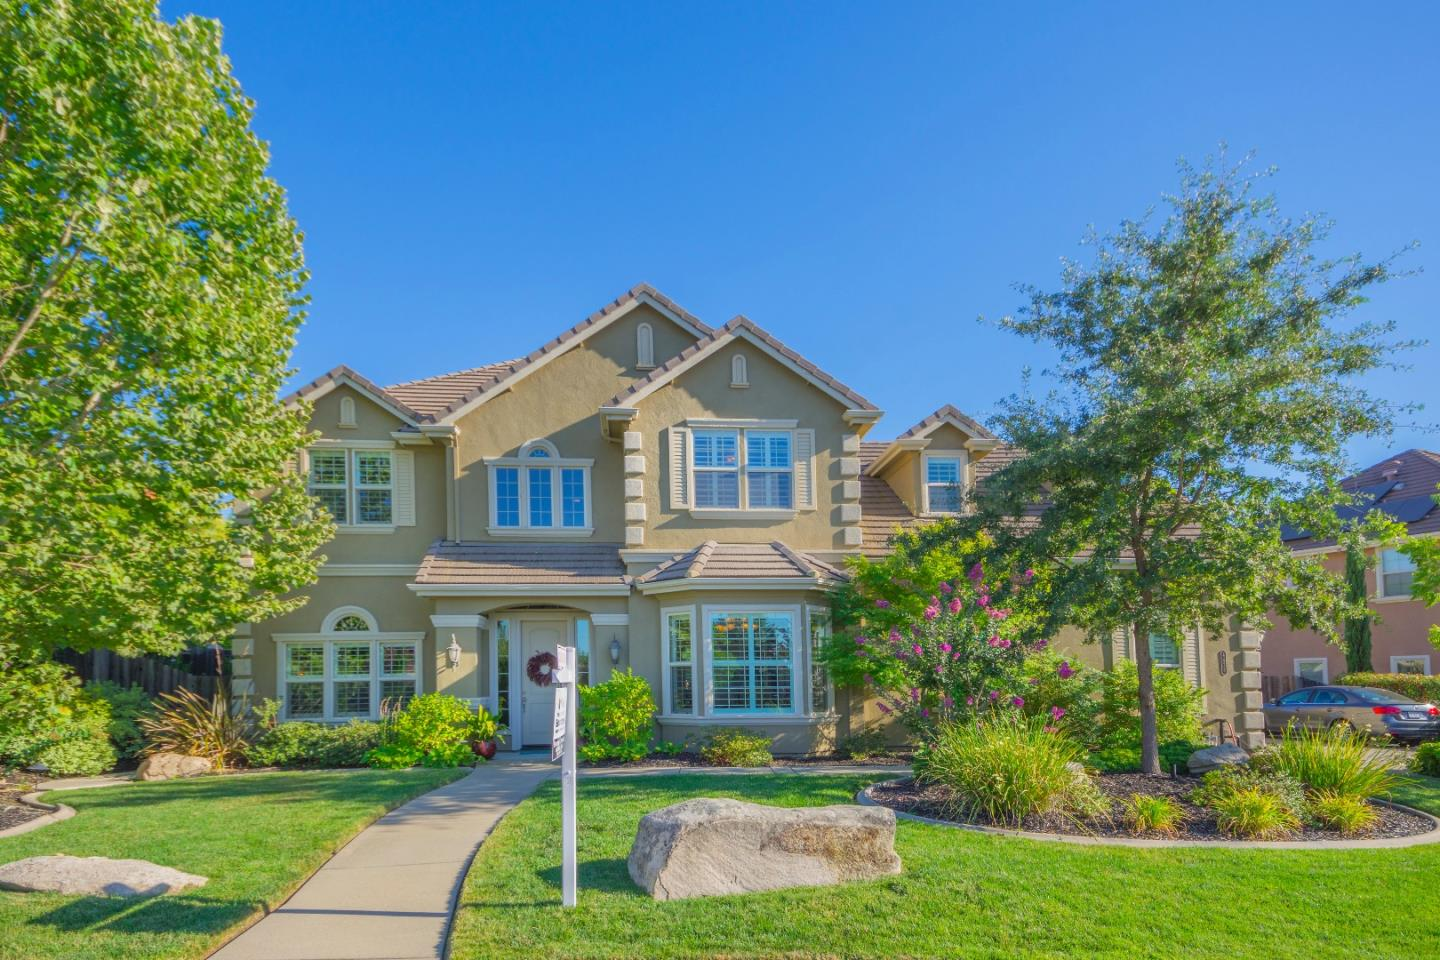 Single Family Home for Sale at 4478 Greenbrae Road Rocklin, California 95677 United States